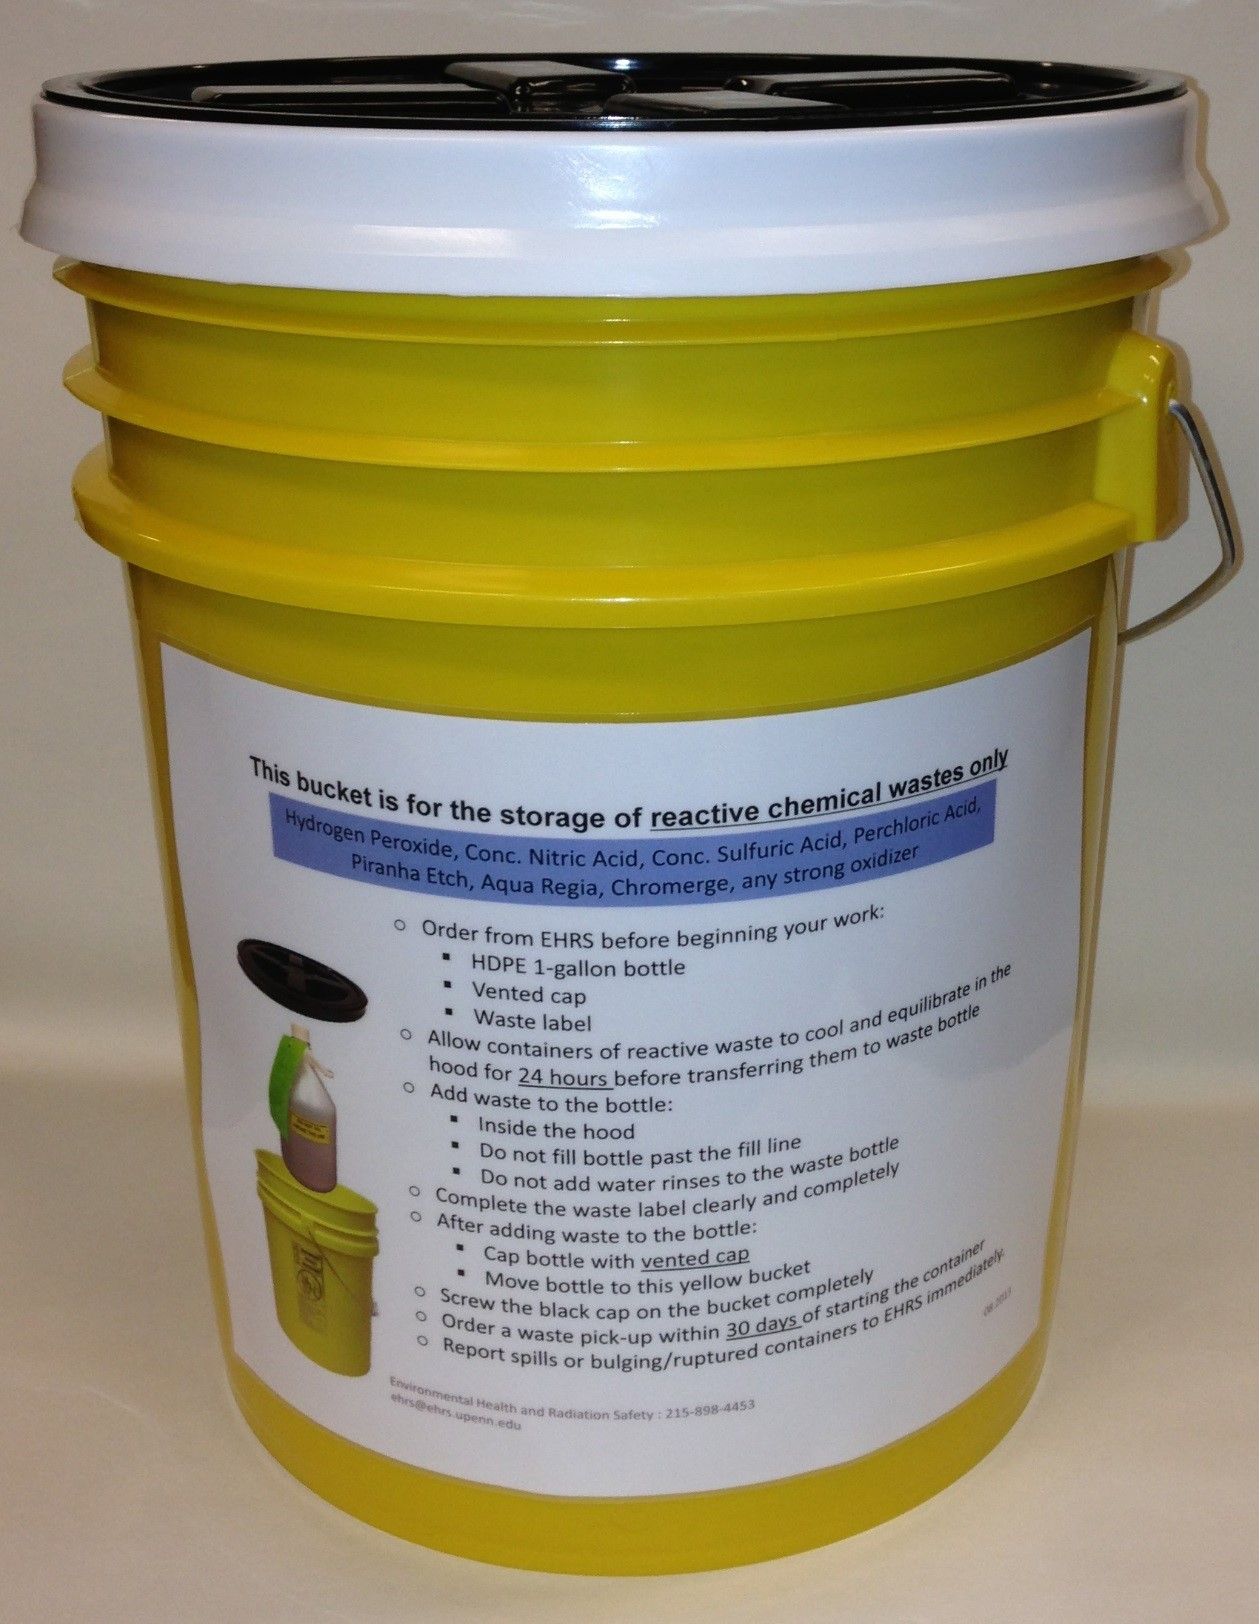 Yellow 5-gallon plastic bucket with black screw top lid and instructions sign affixed to side